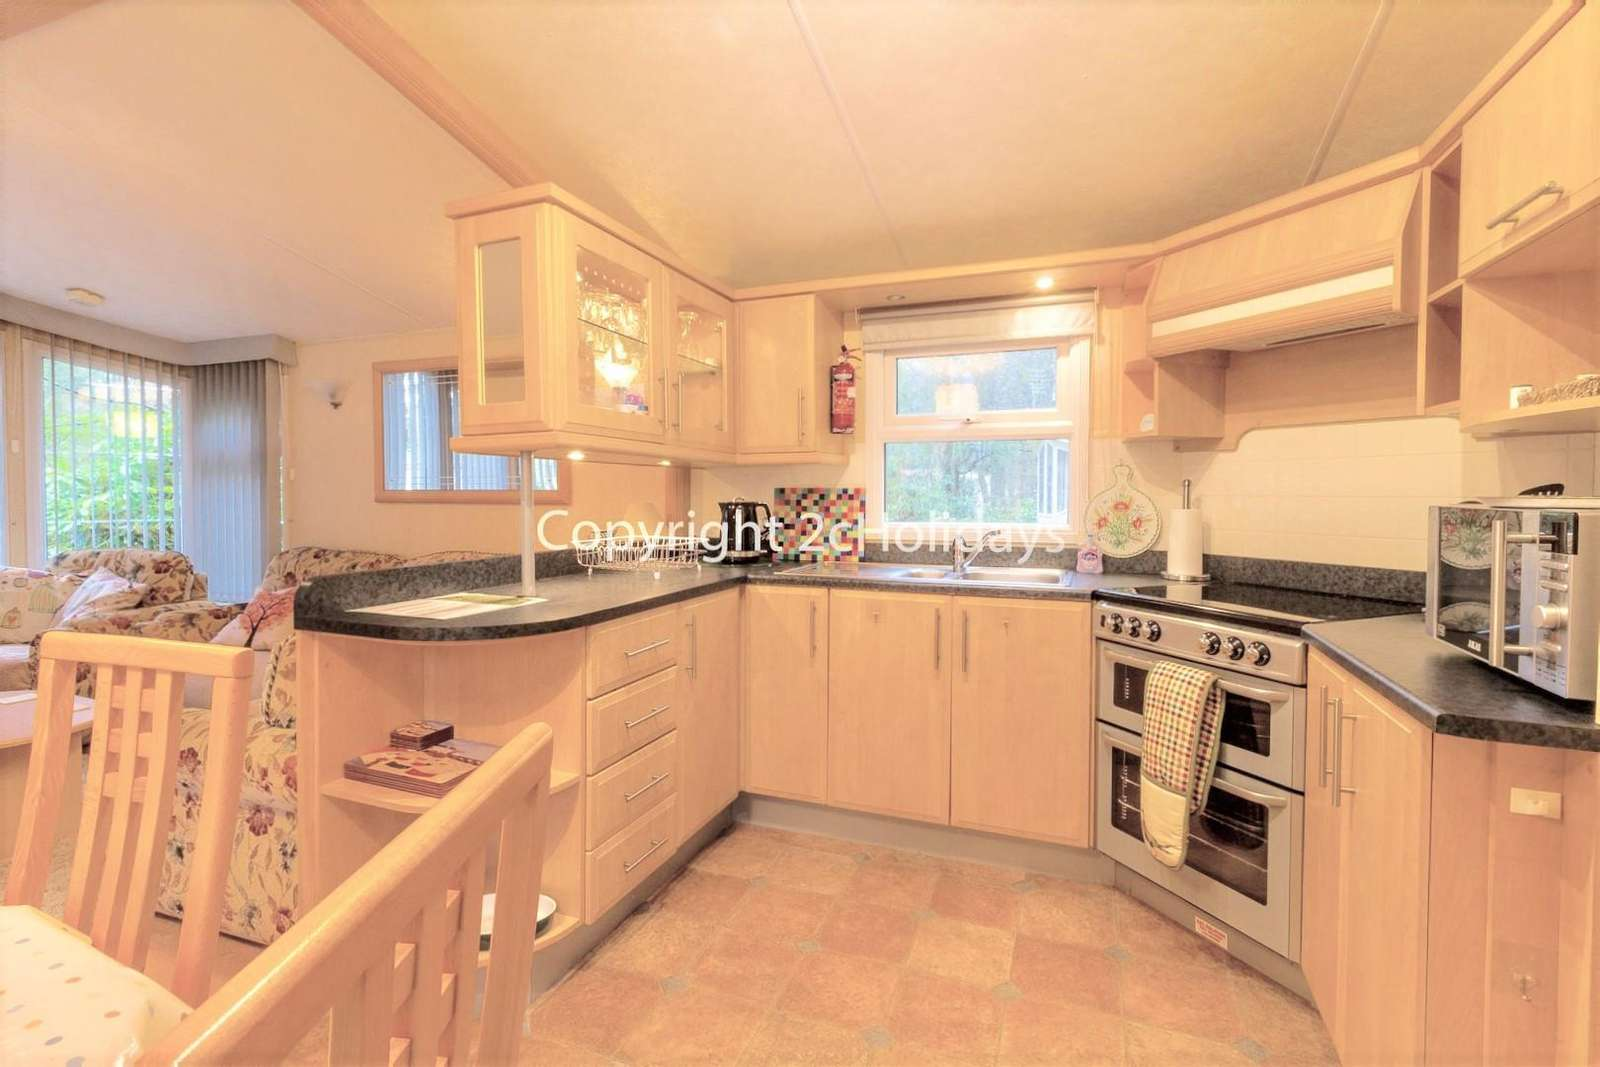 A spacious and fully equipped kitchen, perfect for self-catering breaks!